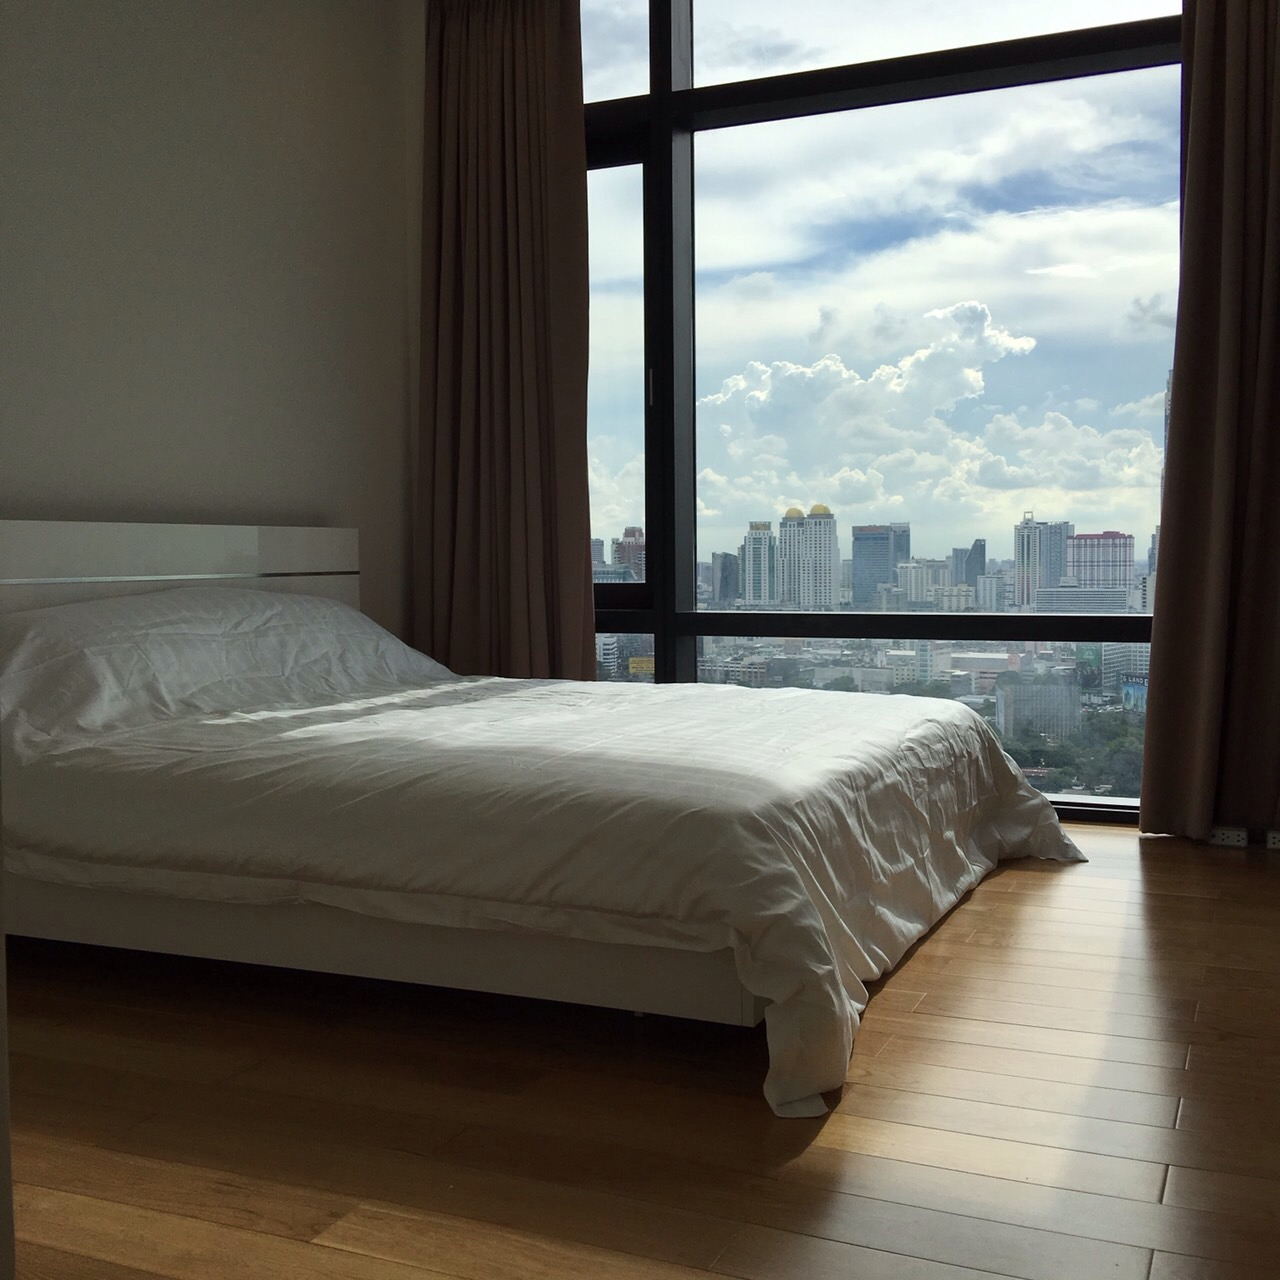 RE/MAX All Star Realty Agency's One Bedder (46sqm) at Circle2 Condo Rent very cheap 4